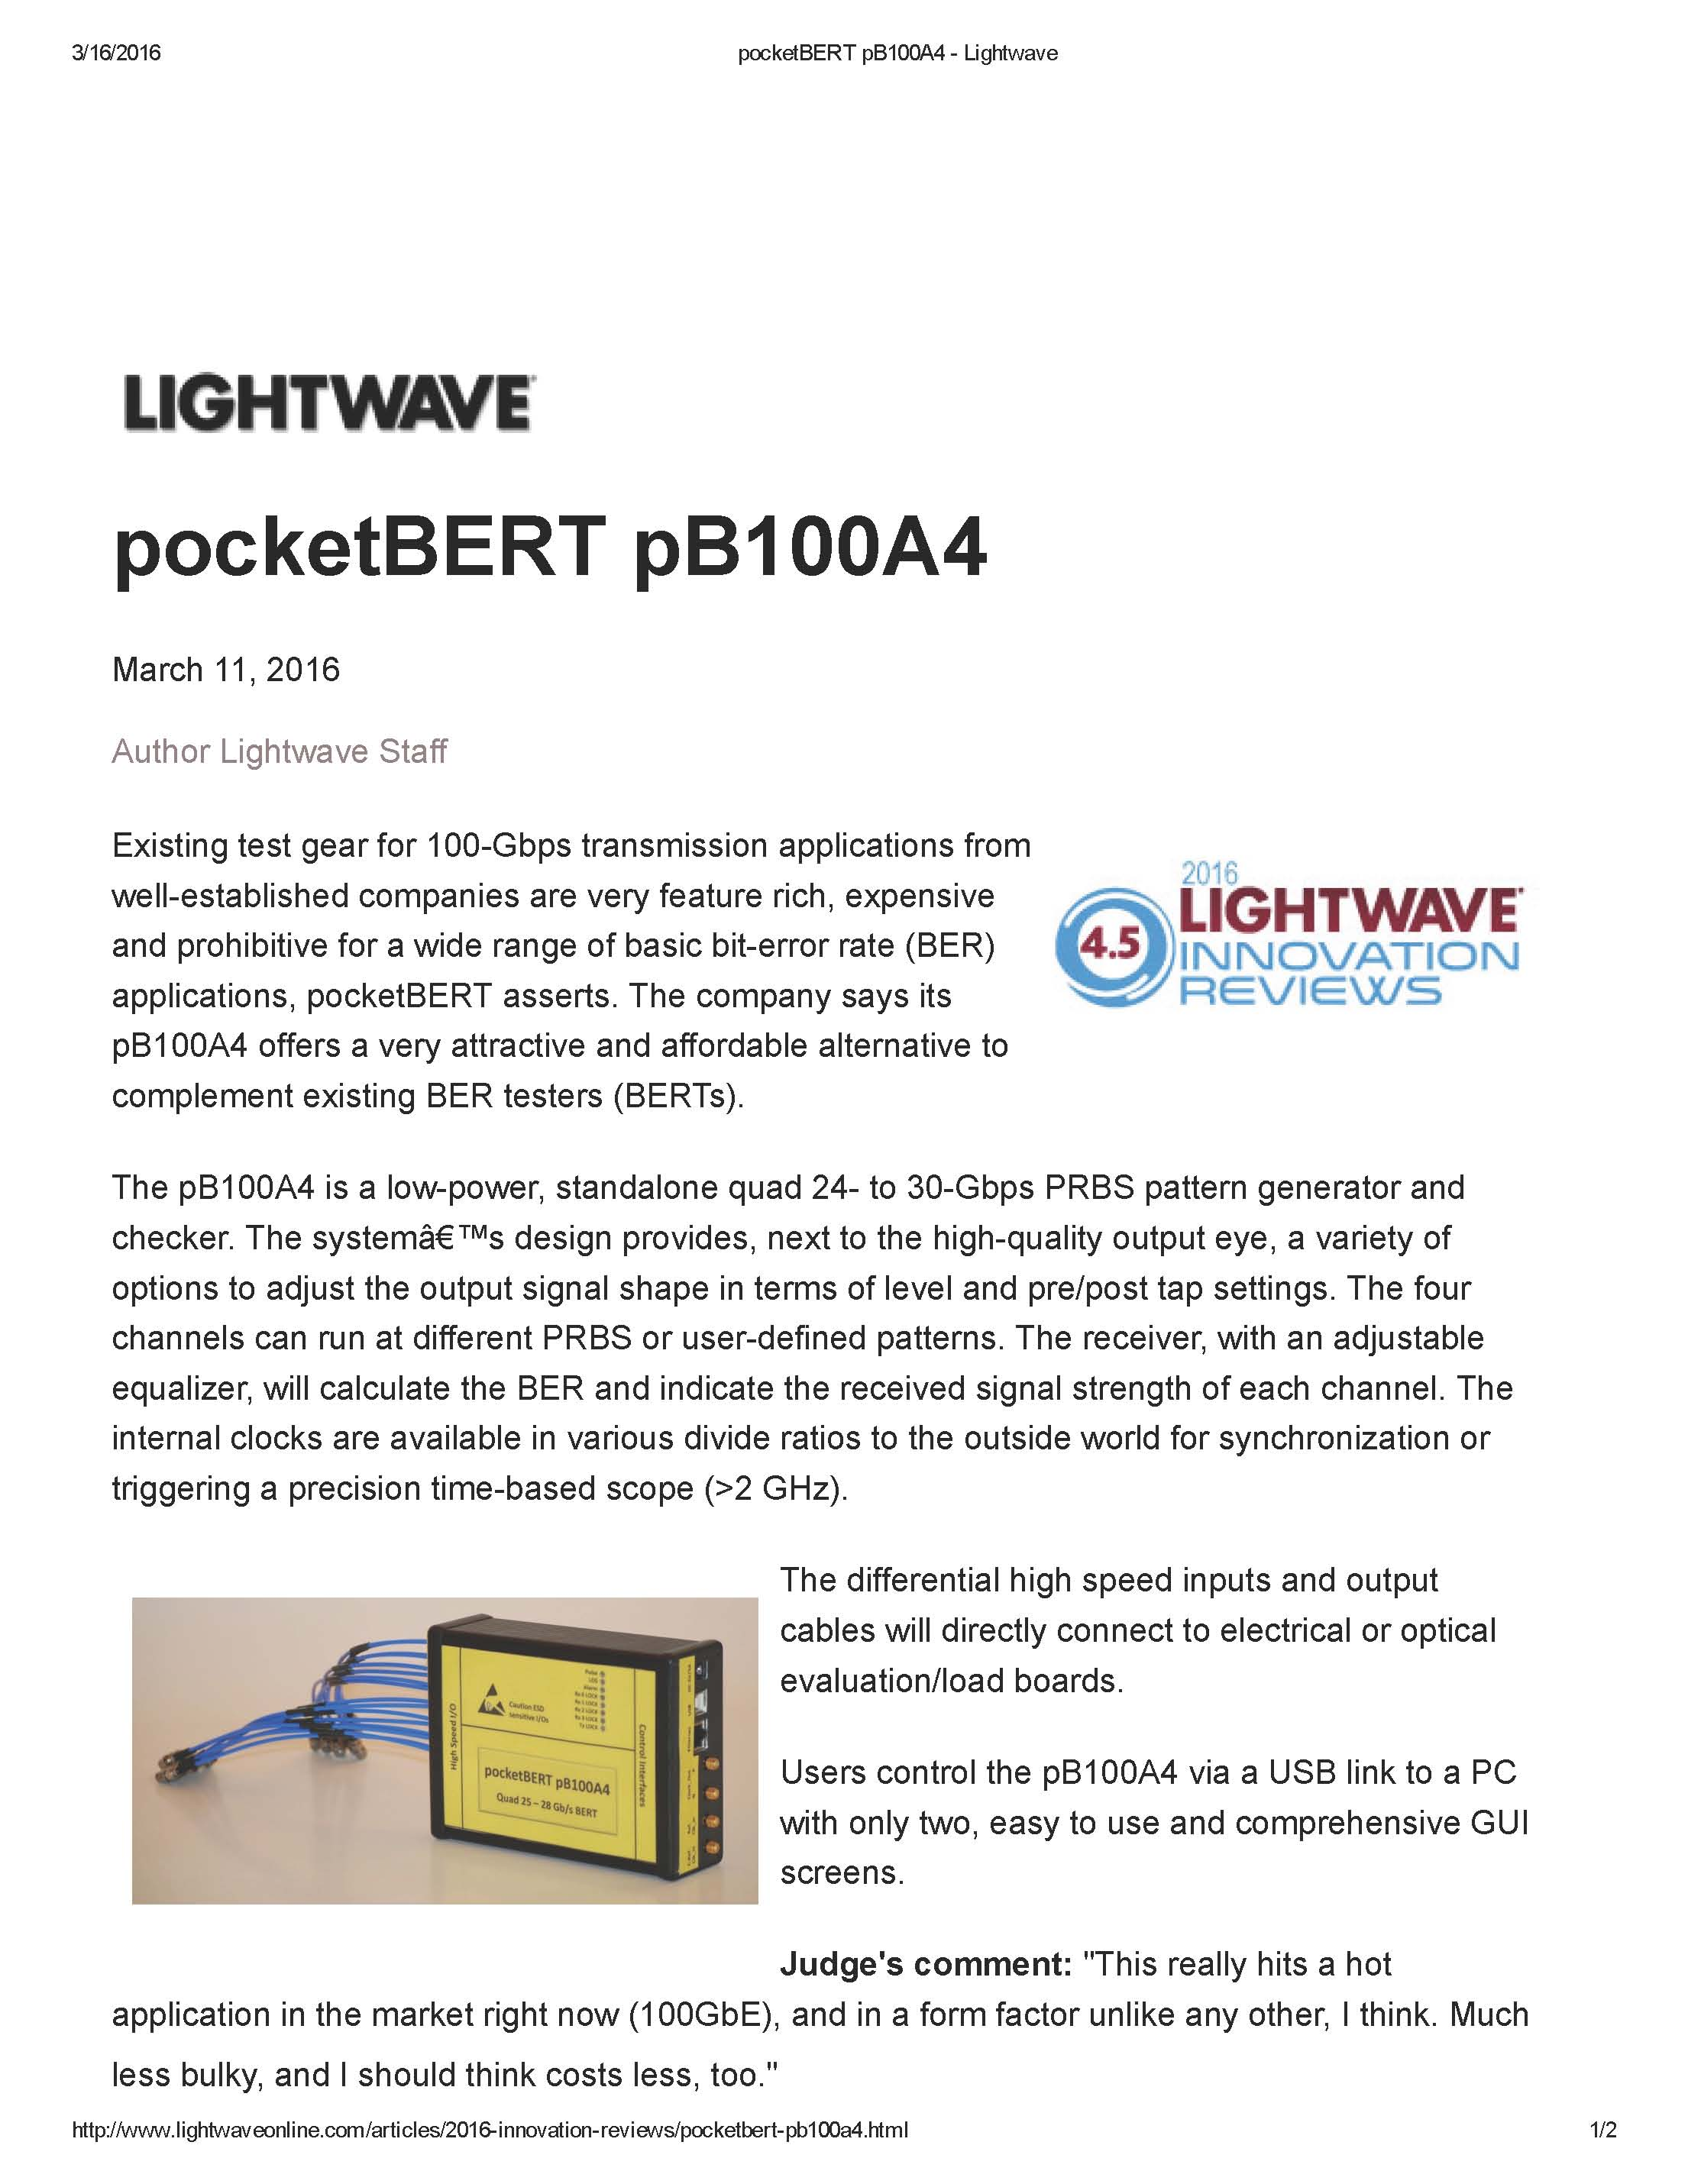 picture of article in Lightwave Online Magazine announcing the newly released pocketBert pB100A4